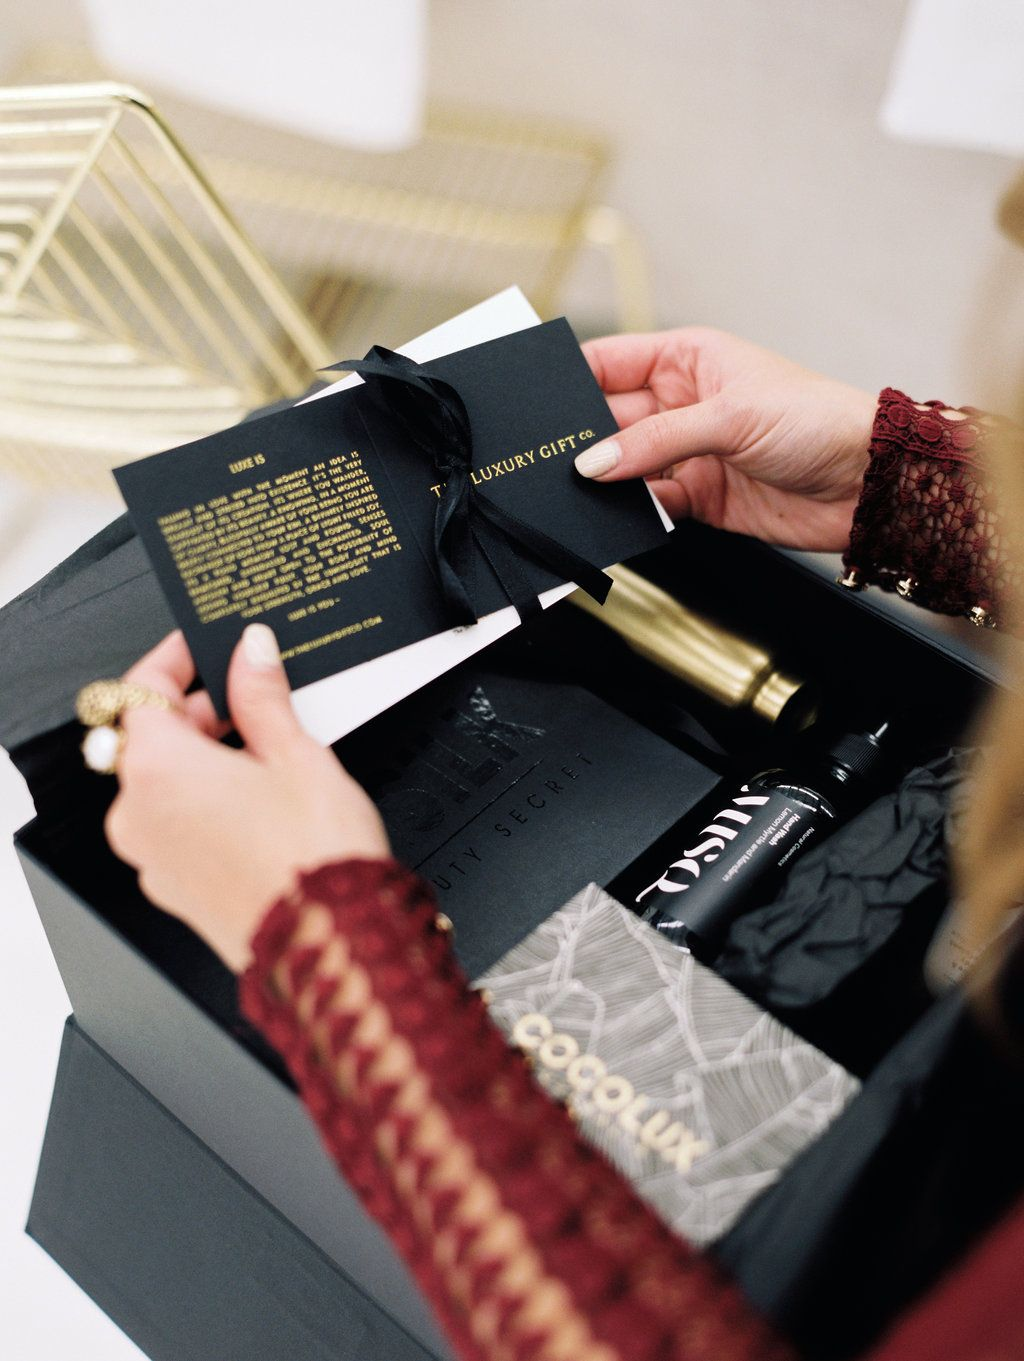 Luxury gifts by @theluxurygiftco Image by @teneilkable for the #HPPRLaunch @hayleyparkerpr